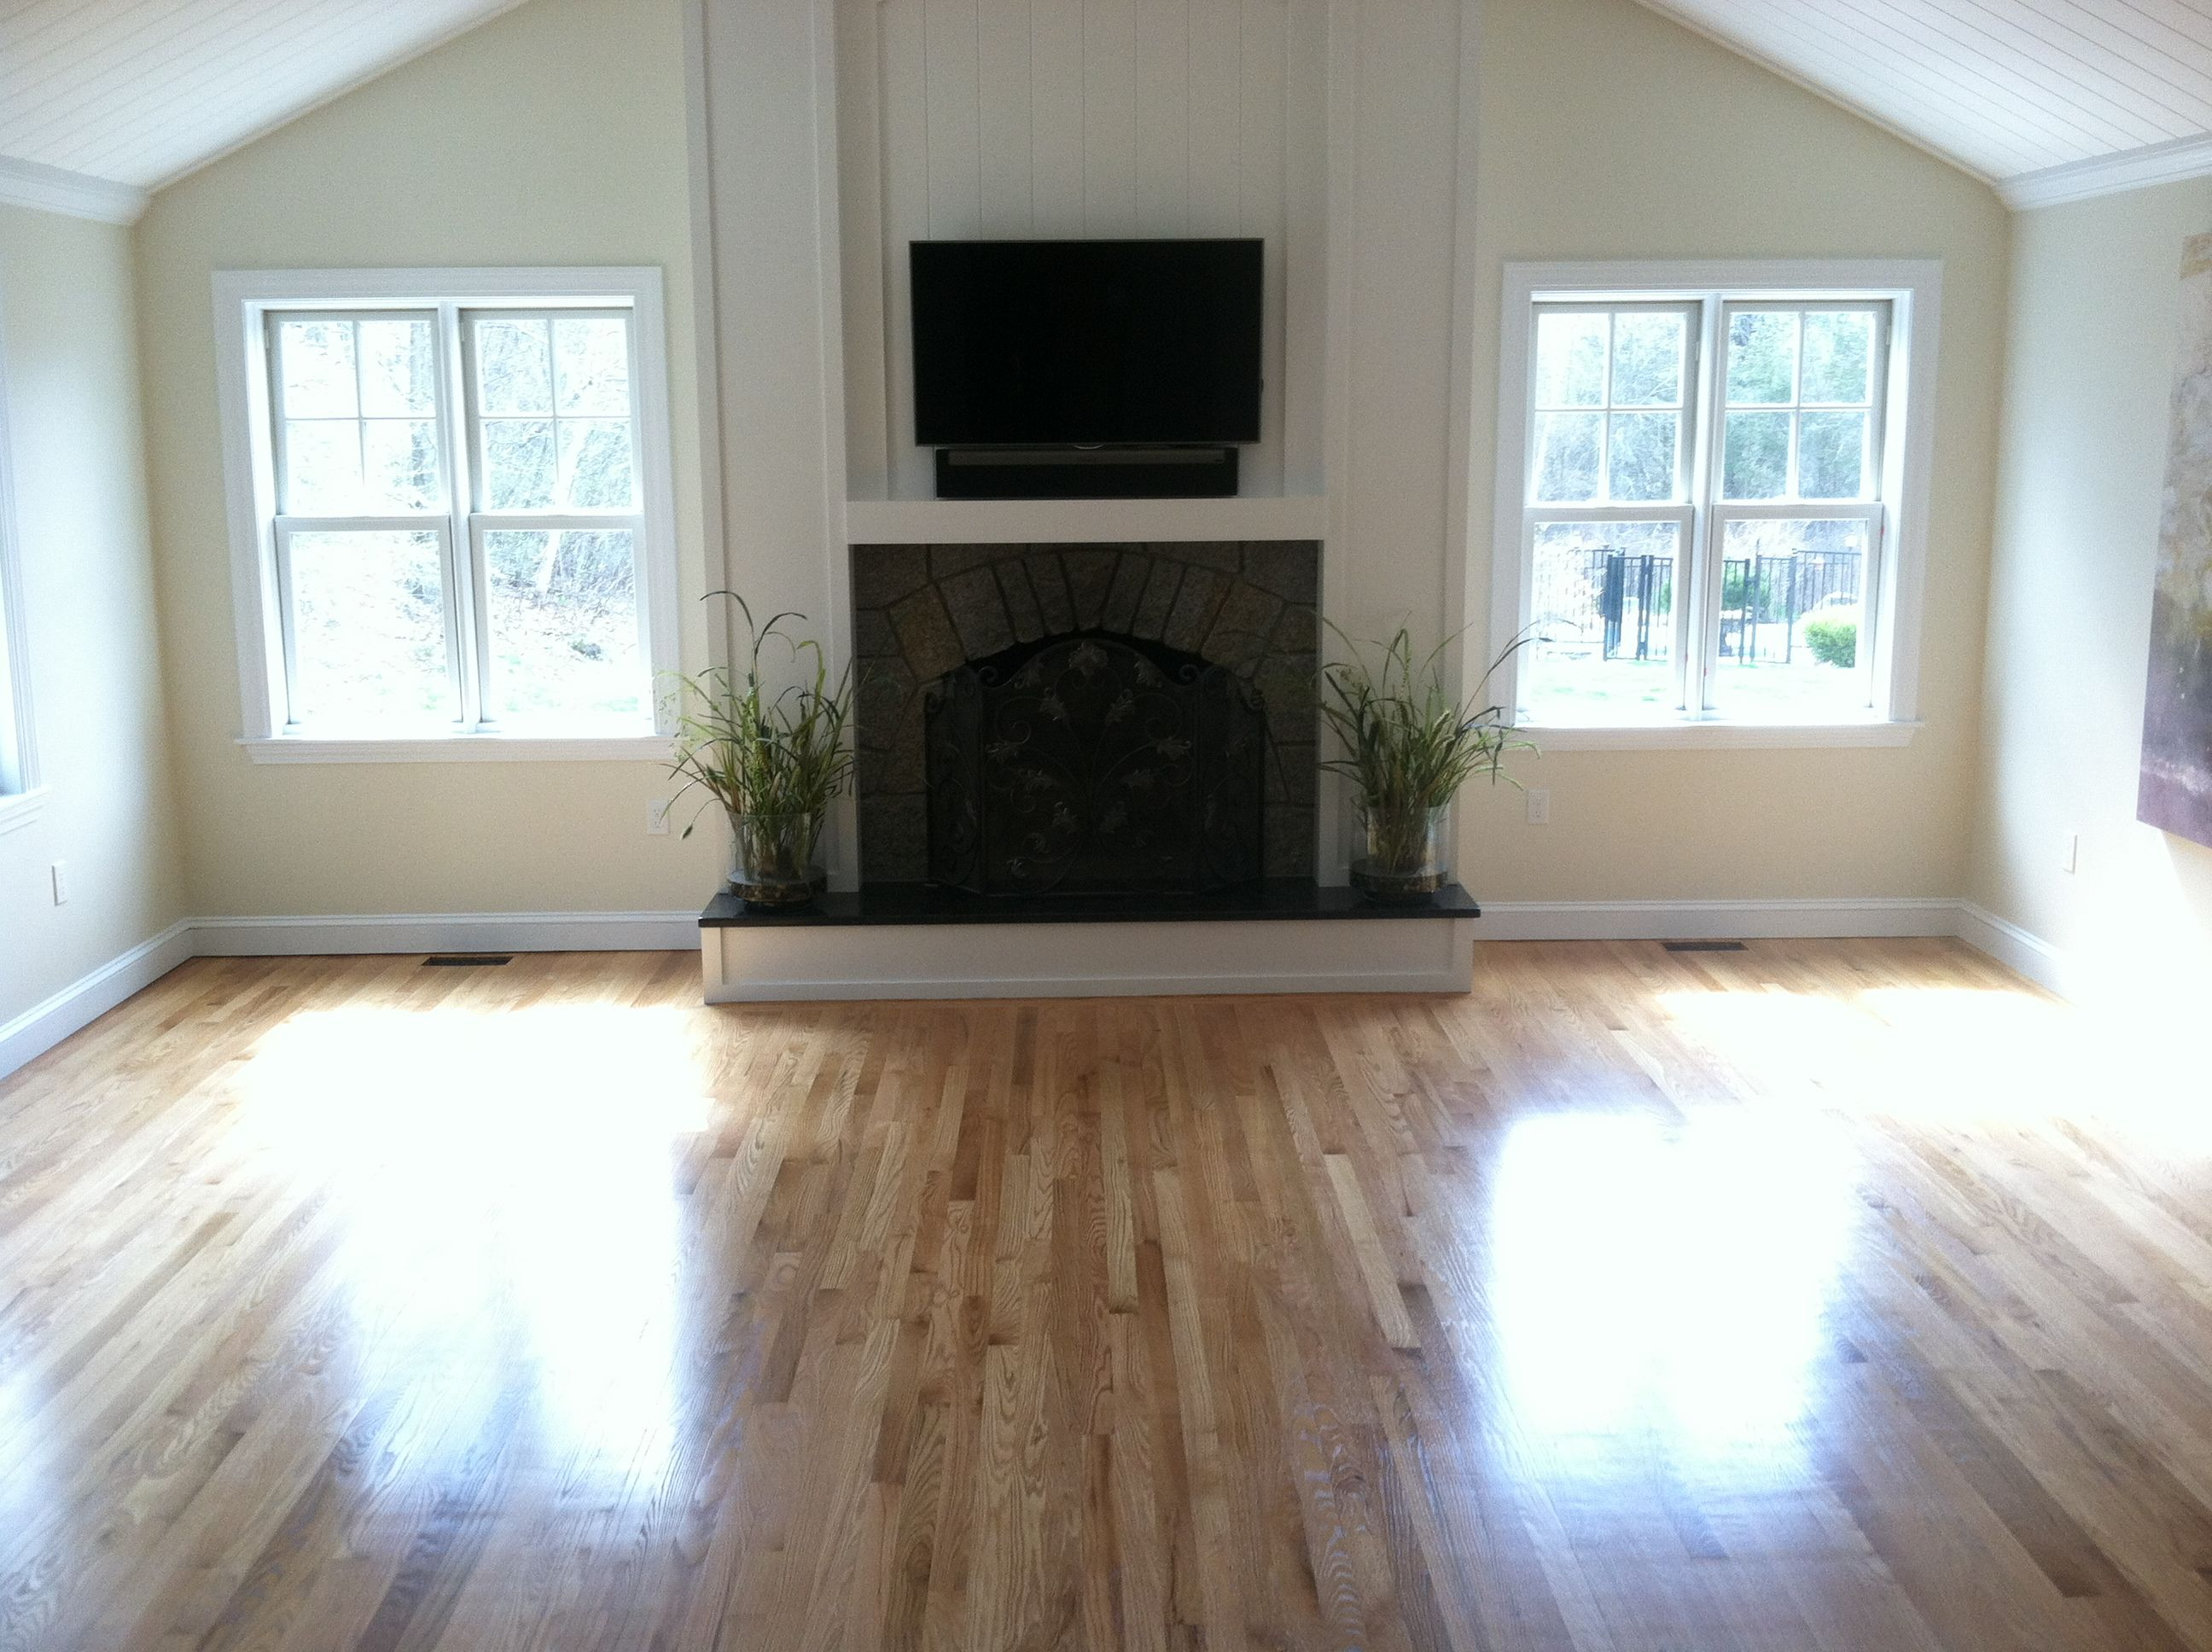 Select And Better Red Oak Flooring With 3 Coats Of Bona Woodline Polyurethane Semigloss Floor Finish